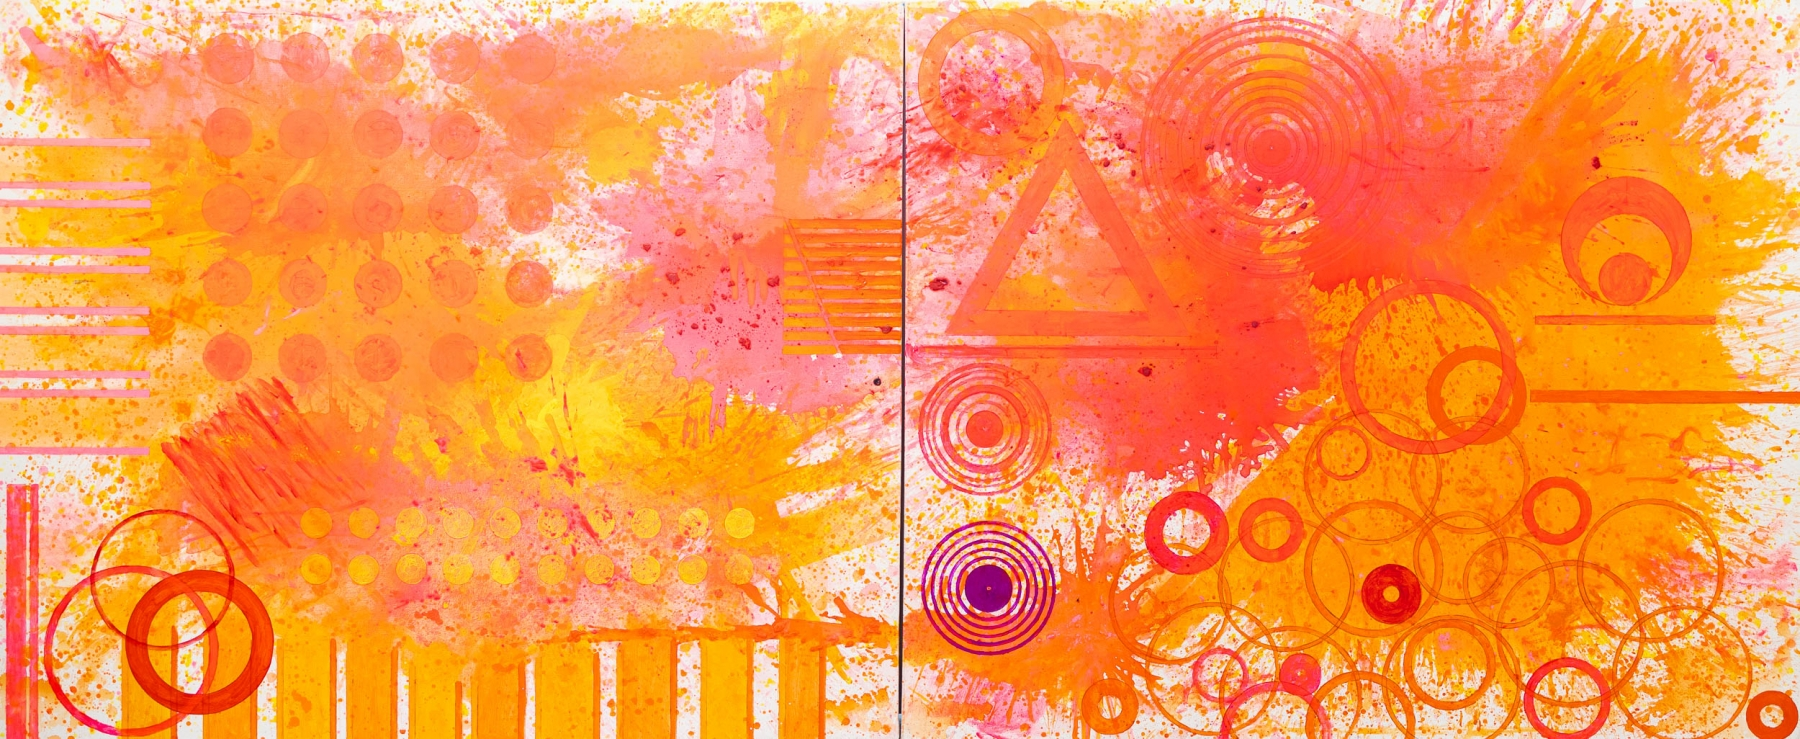 J. Steven Manolis, Flamingo painting, 2020, Acrylic painting on canvas, 60 x 144 inches, pink abstract art